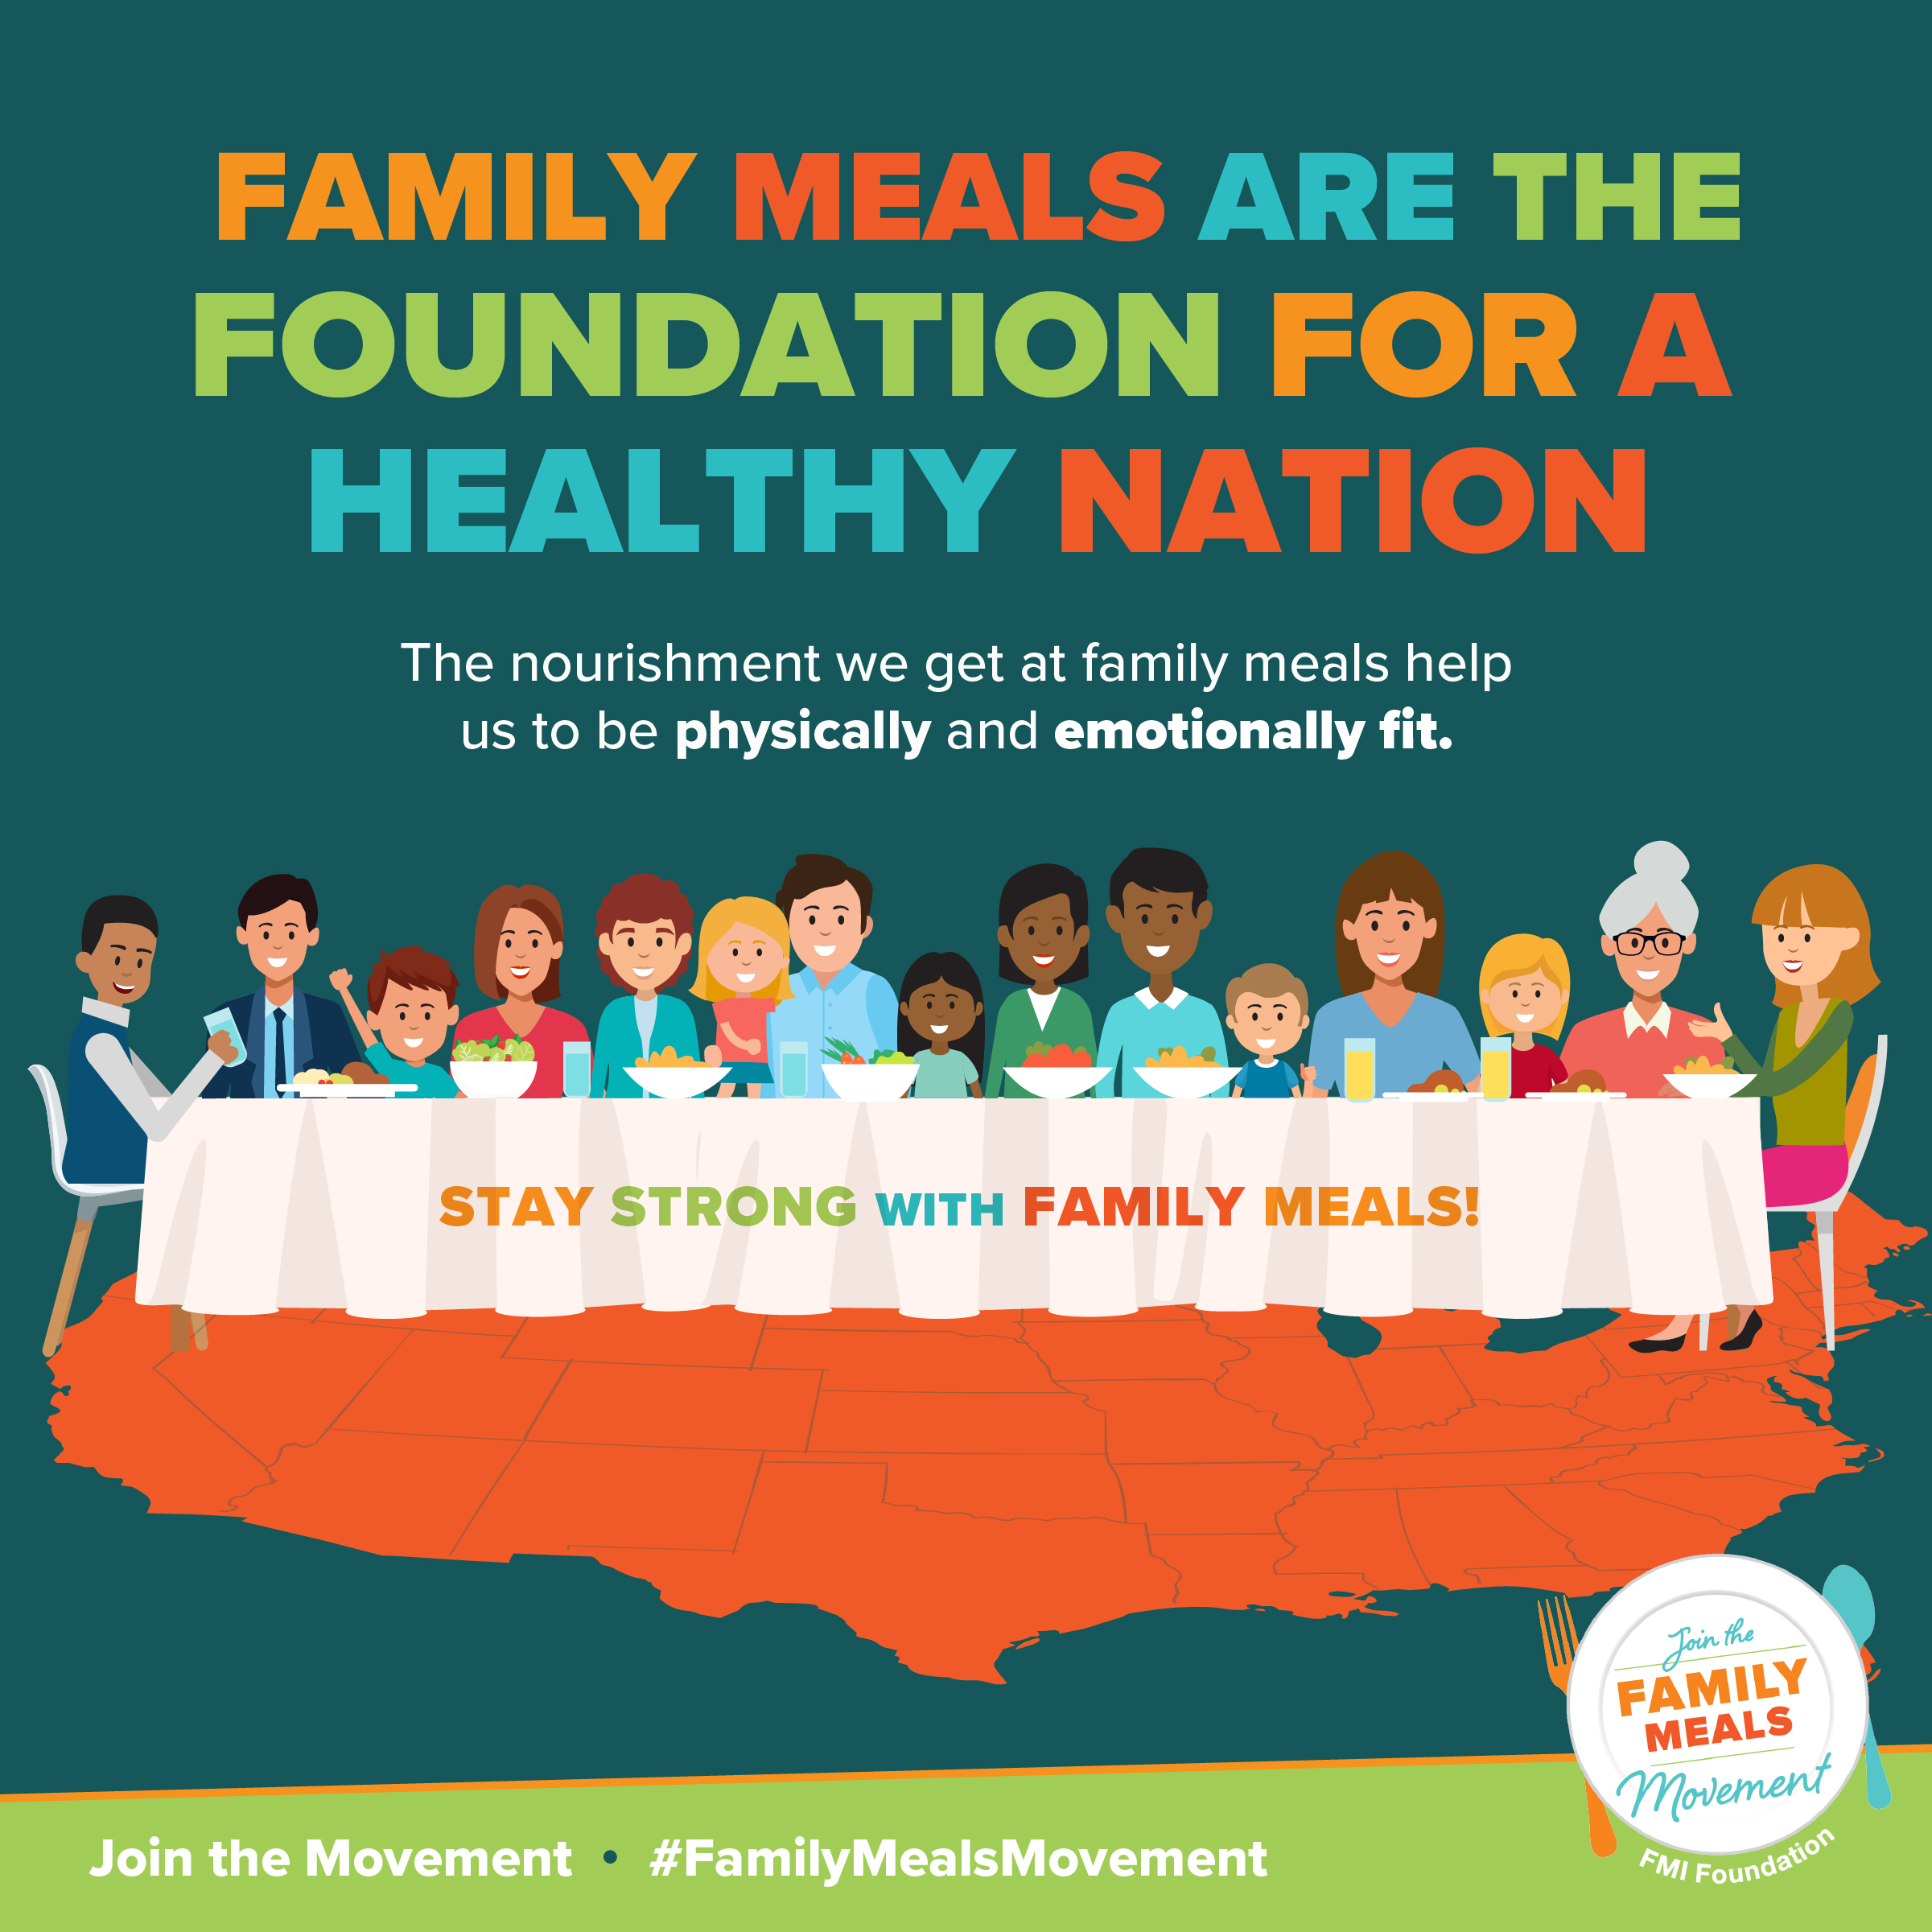 Family Meals are the Foundation for a Healthy Nation